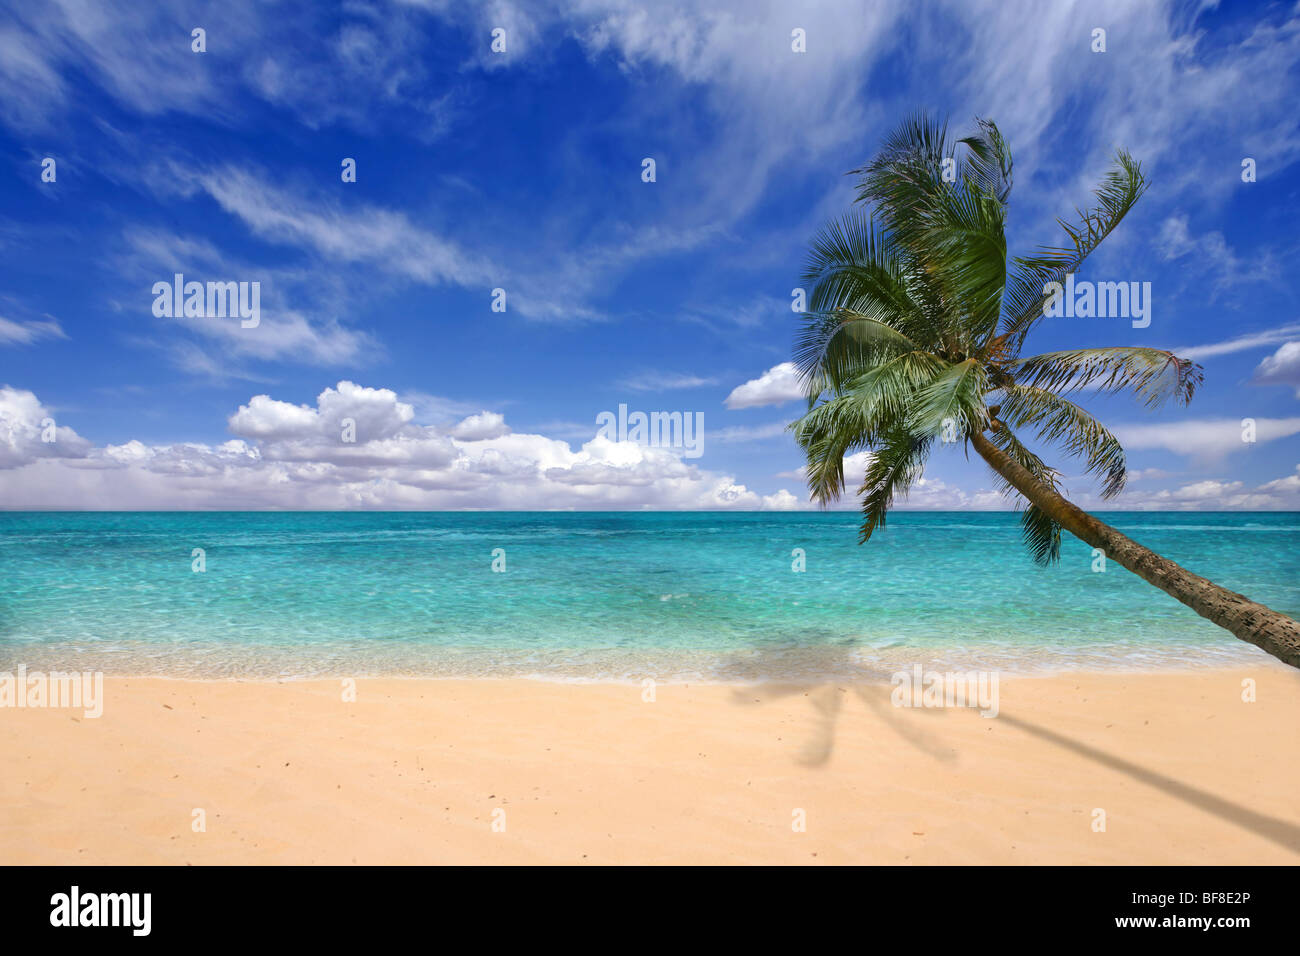 Paradise Teal Waters of the Hawaiian Islands - Stock Image